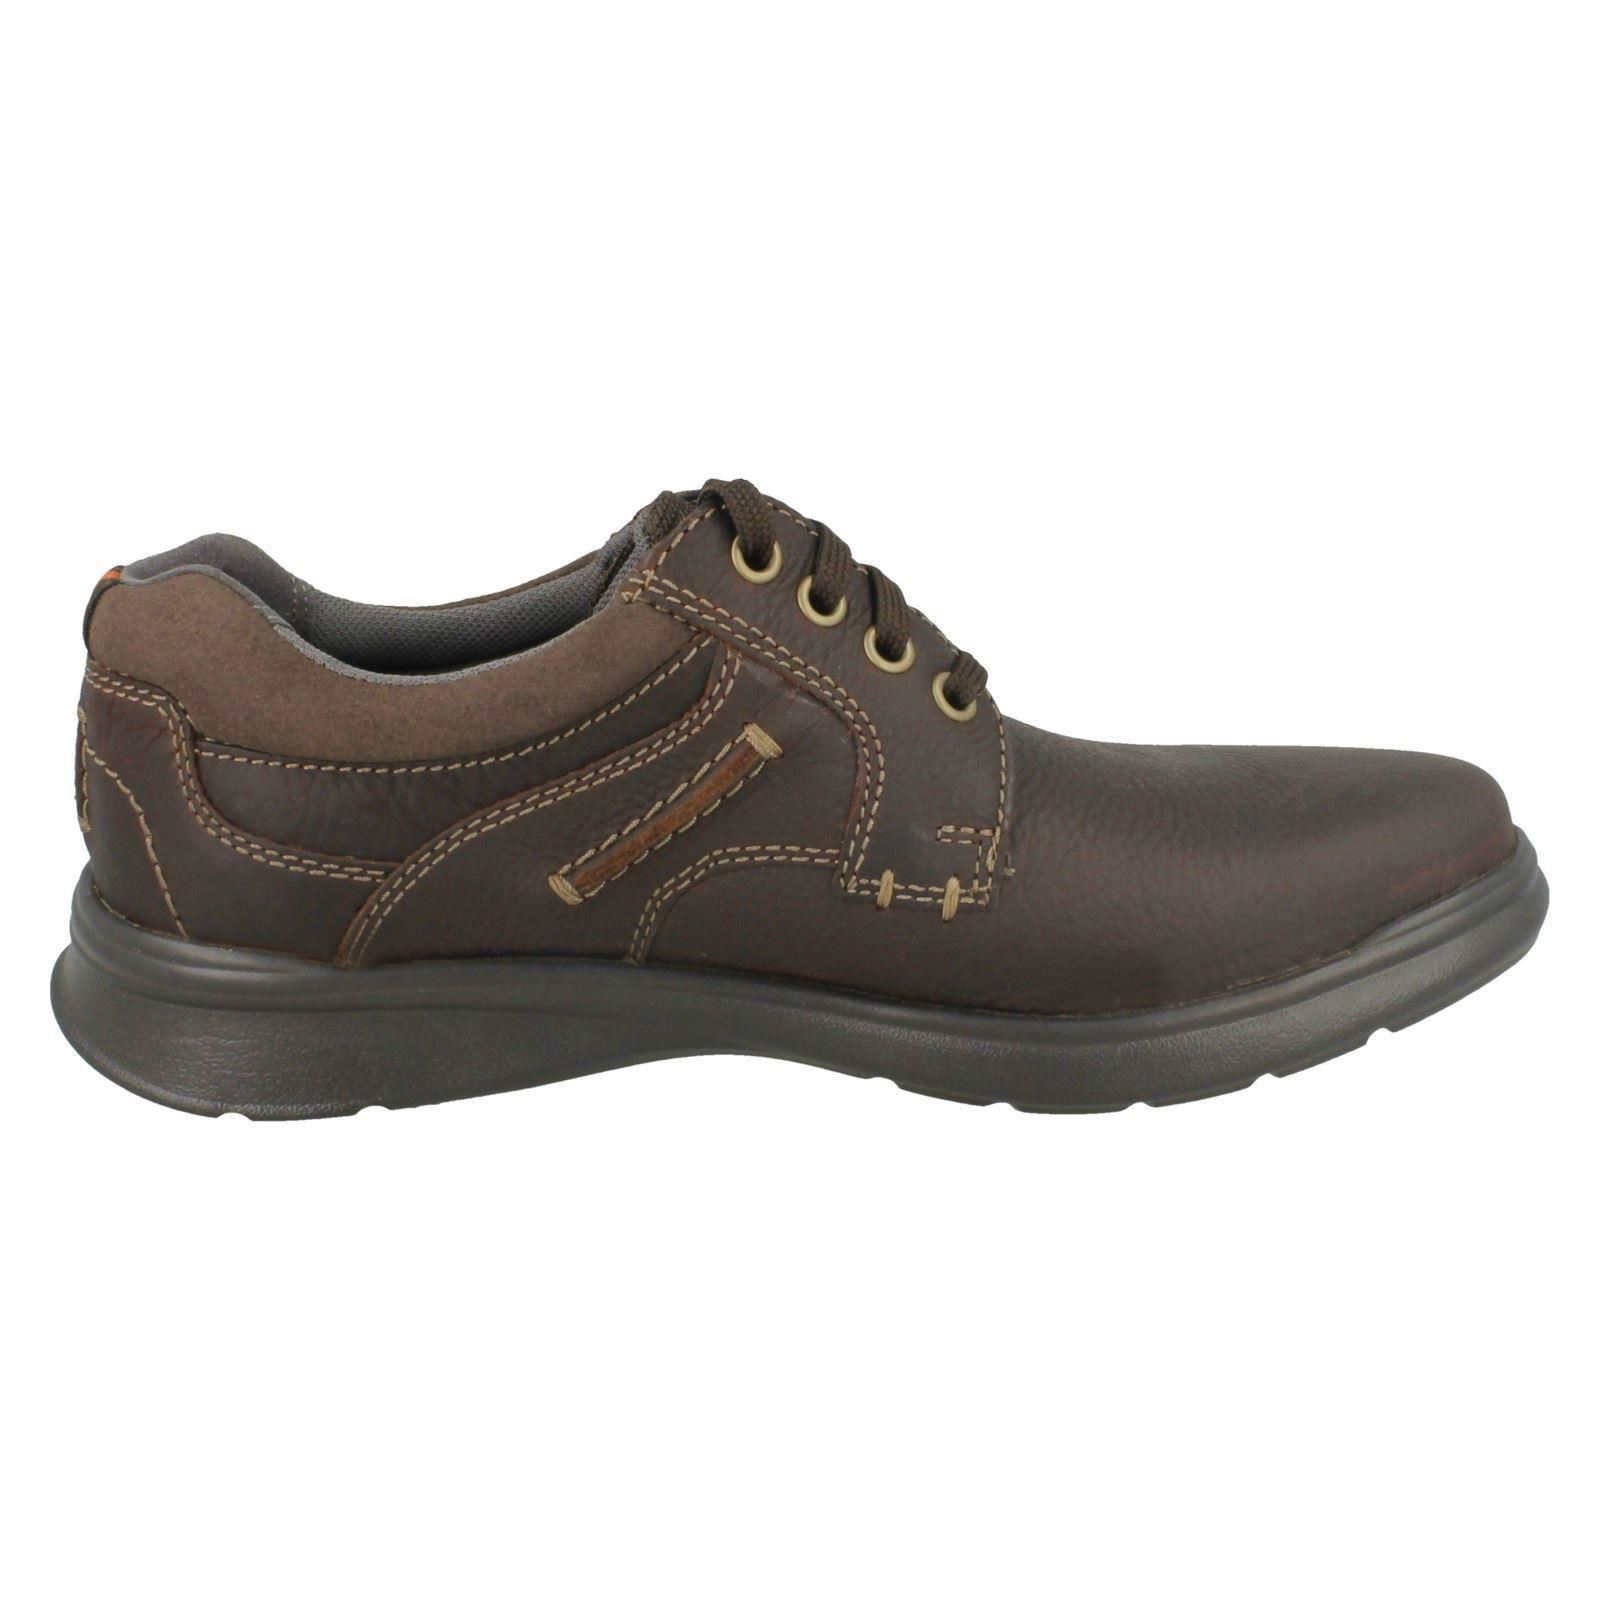 Mens Clarks Casual Shoes Shoes Casual *Cotrell Plain* f766df